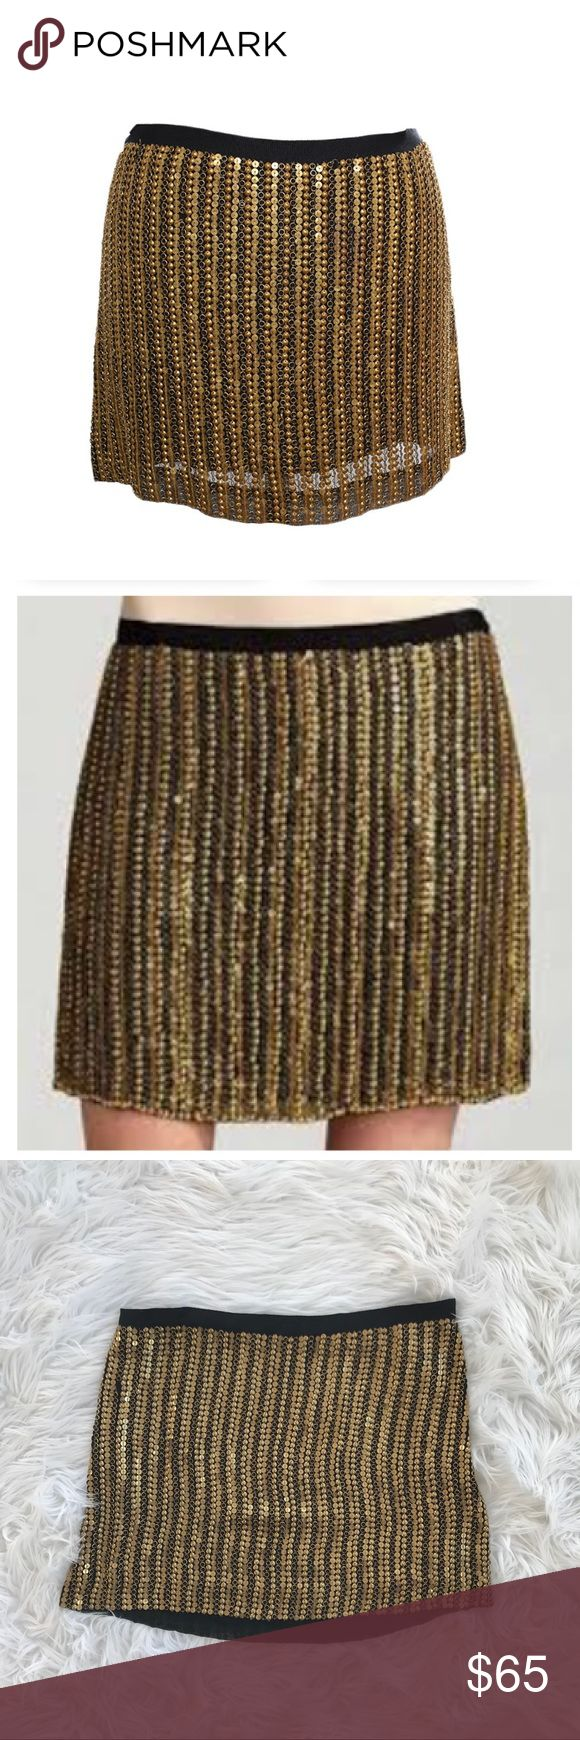 """• Theory • Calinda Silk & Copper Metal Mini Skirt - Theory - Calinda Cooper Metal Mini Skirt  - Silk & Brass - Gold and Black - Size 0 - Length 14"""" - A few missing (pictured) - Otherwise excellent Condition Theory Skirts Mini"""